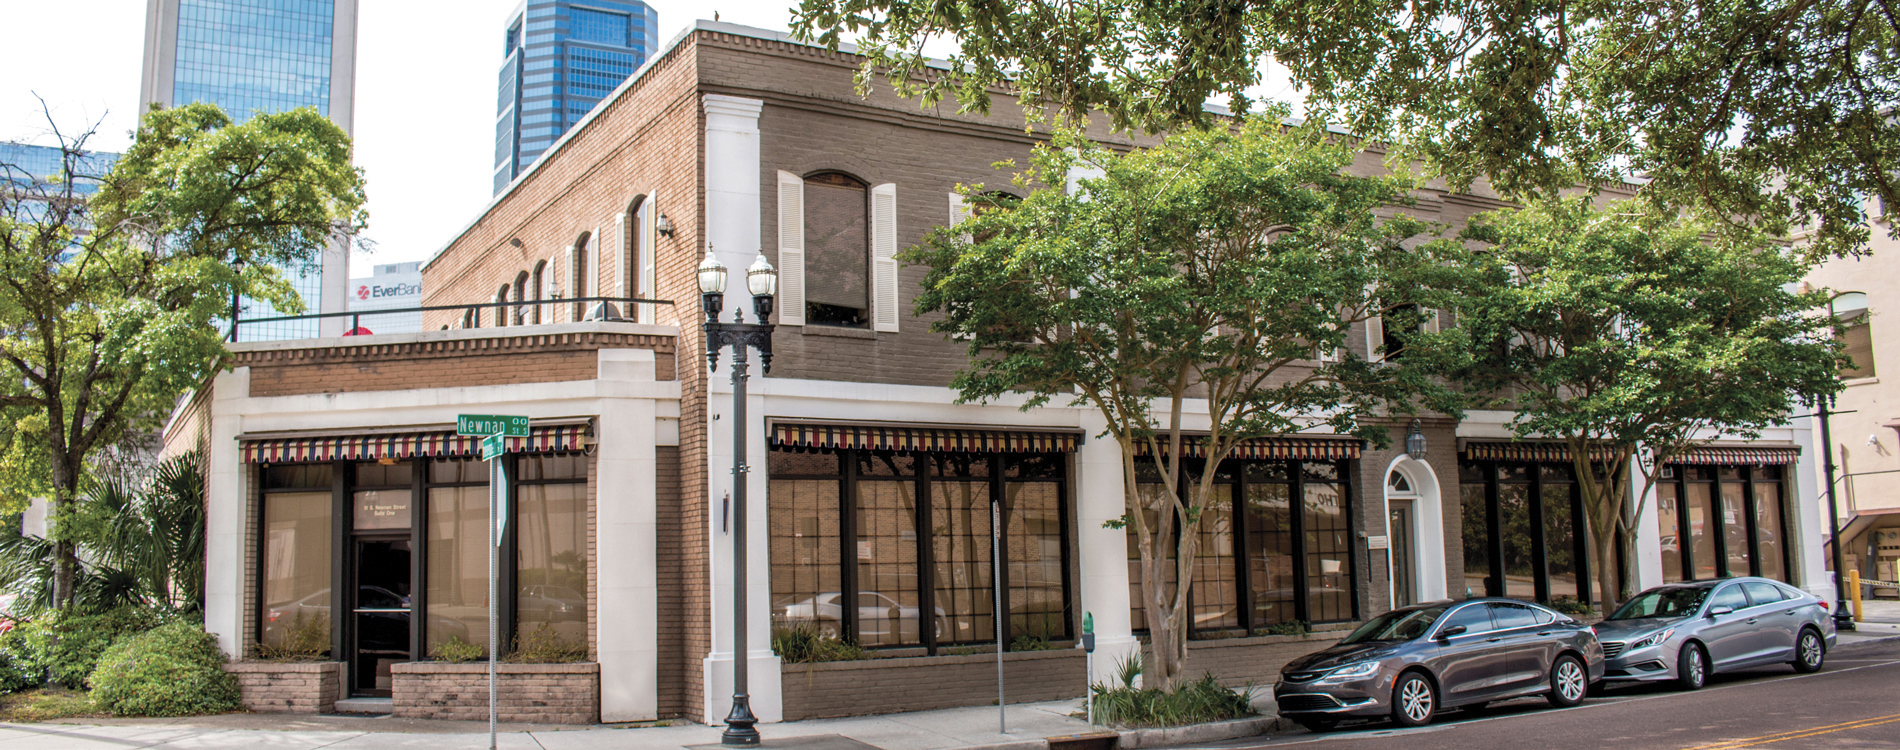 jacksonville-downtown-office-space1